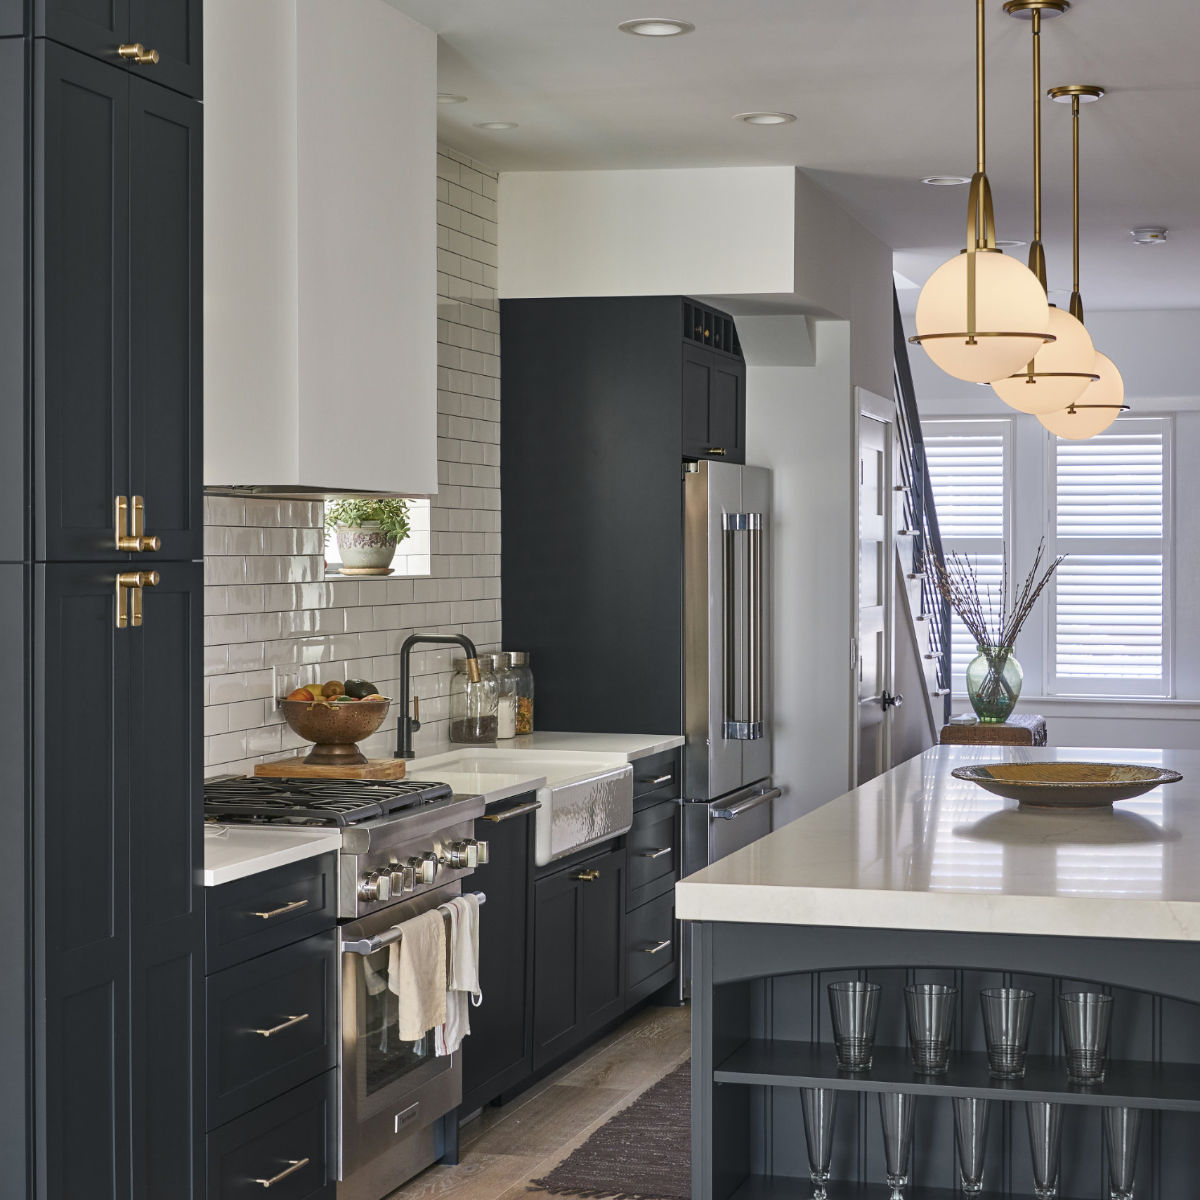 Chicago Lakeview Transitional Kitchen Remodel Gallery